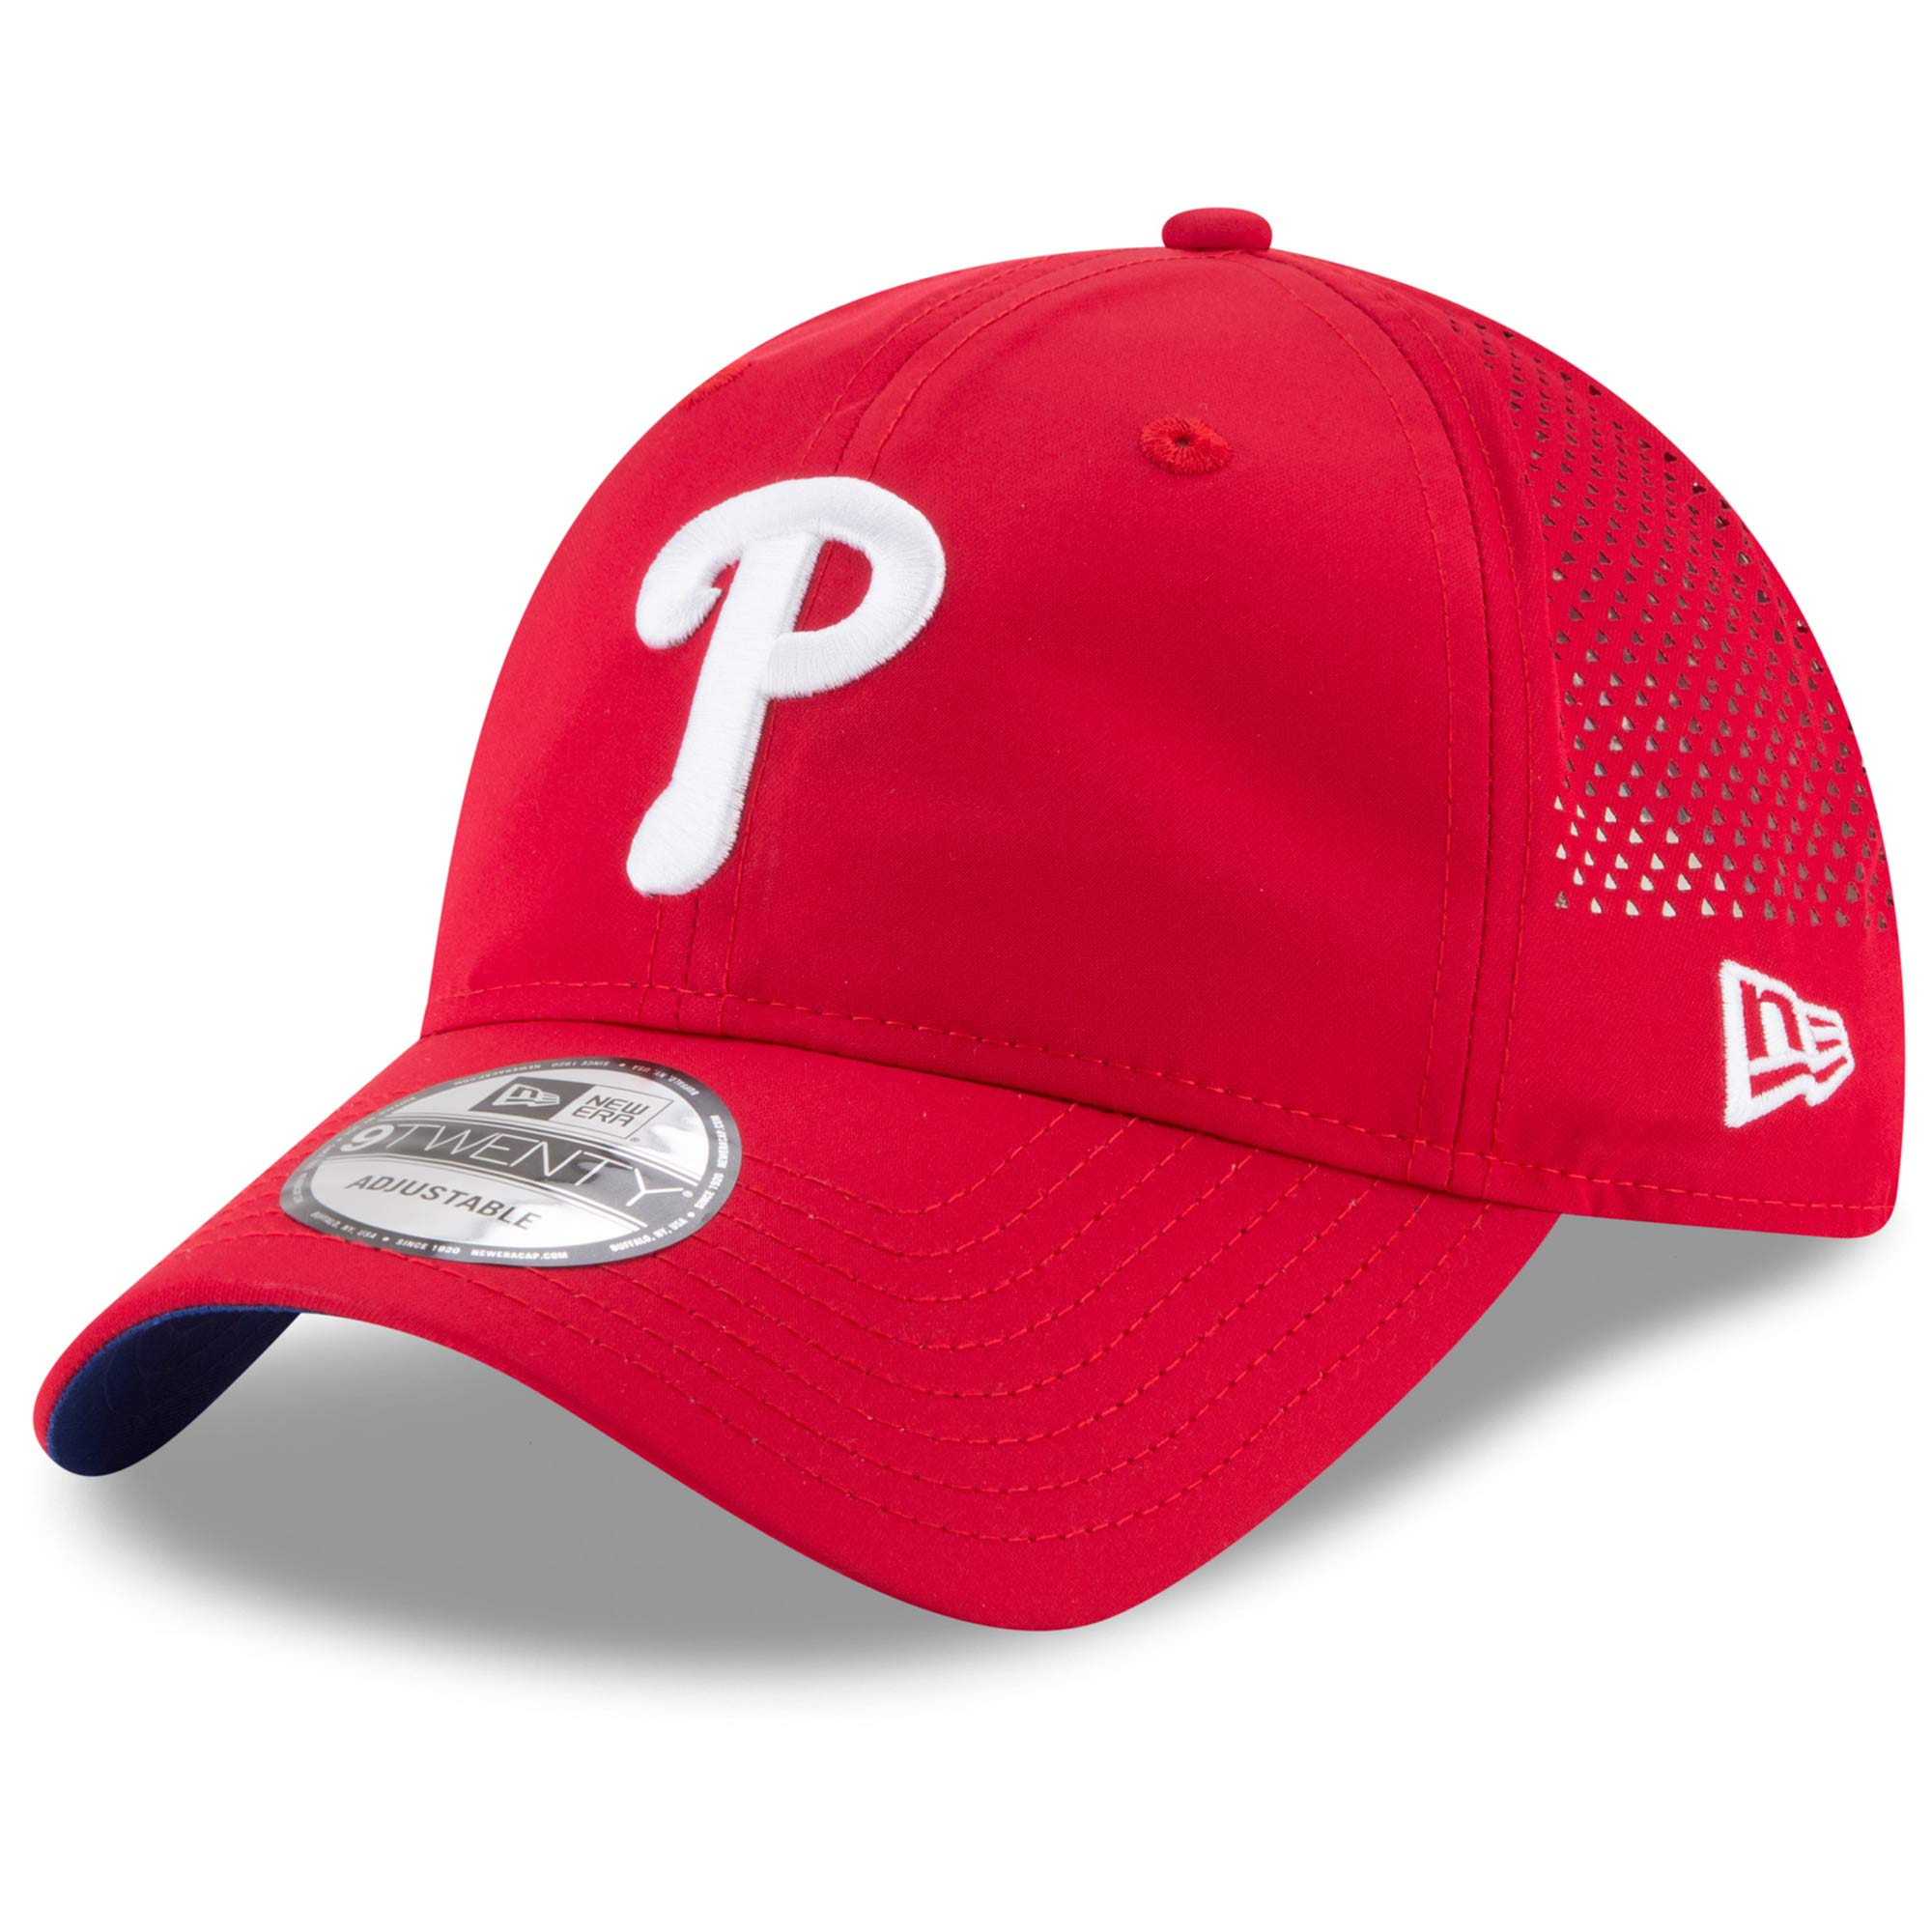 Philadelphia Phillies New Era Perforated Pivot 9TWENTY Adjustable Hat - Red